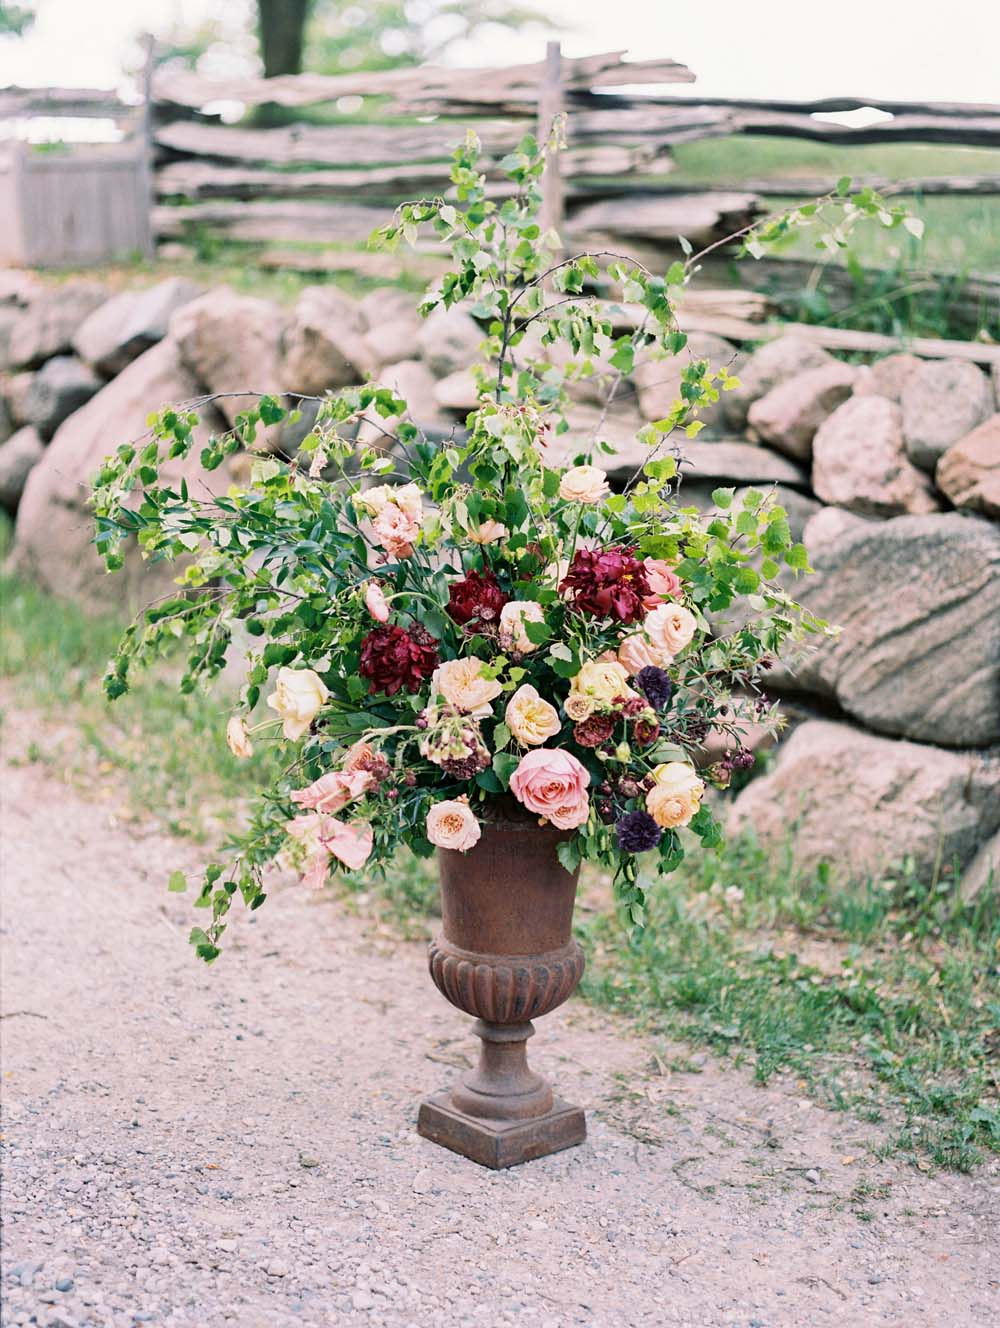 A Quirky Non-Traditional Wedding in Kitchener, Ontario - floral arrangement